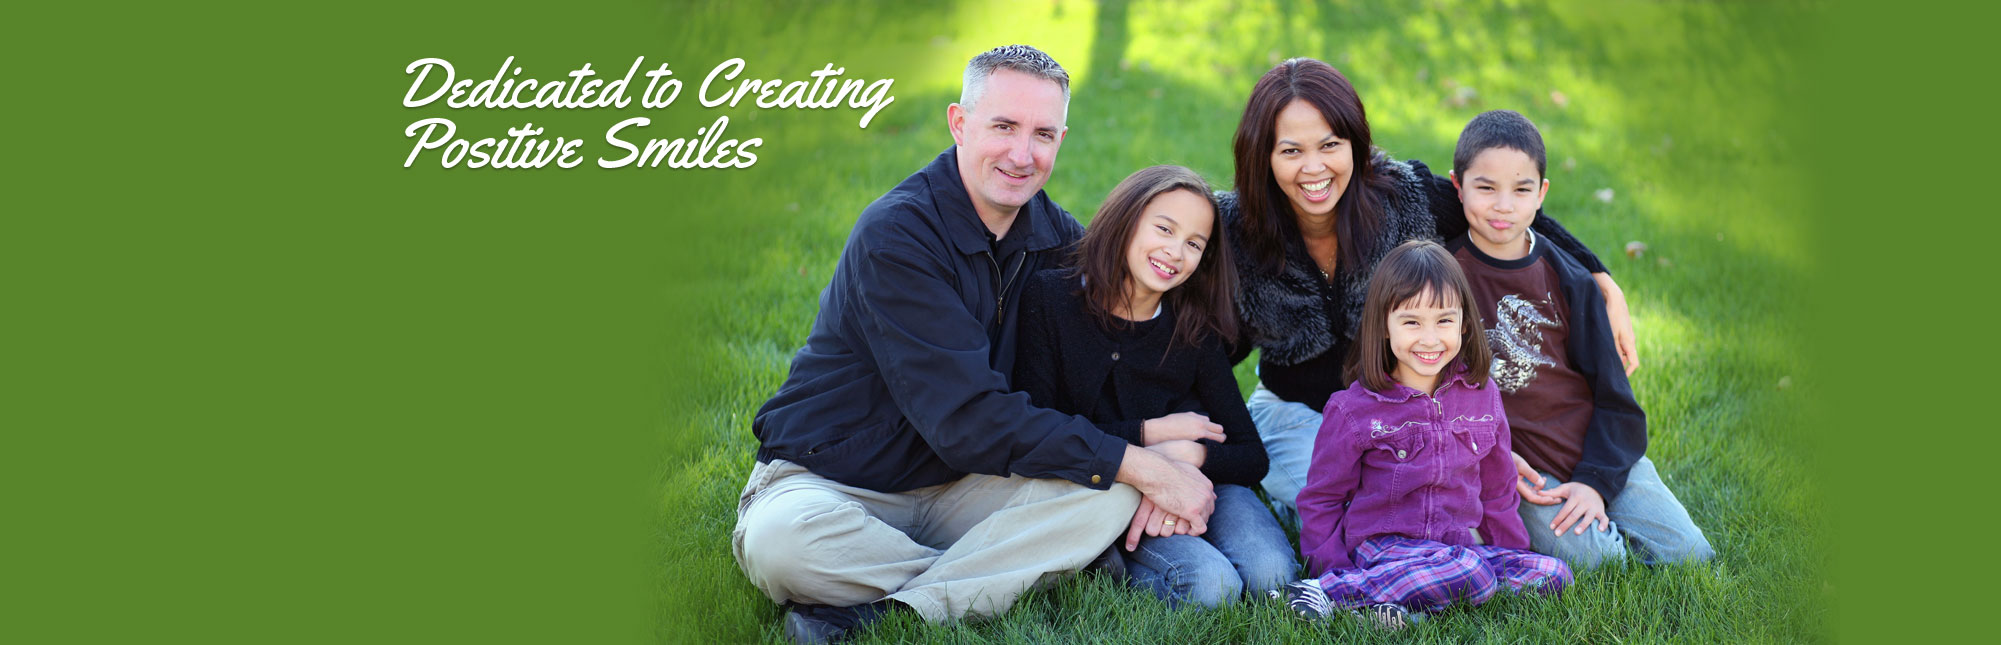 Similing family with young children sitting in the grass - Dedicated to Creating Positive Smiles